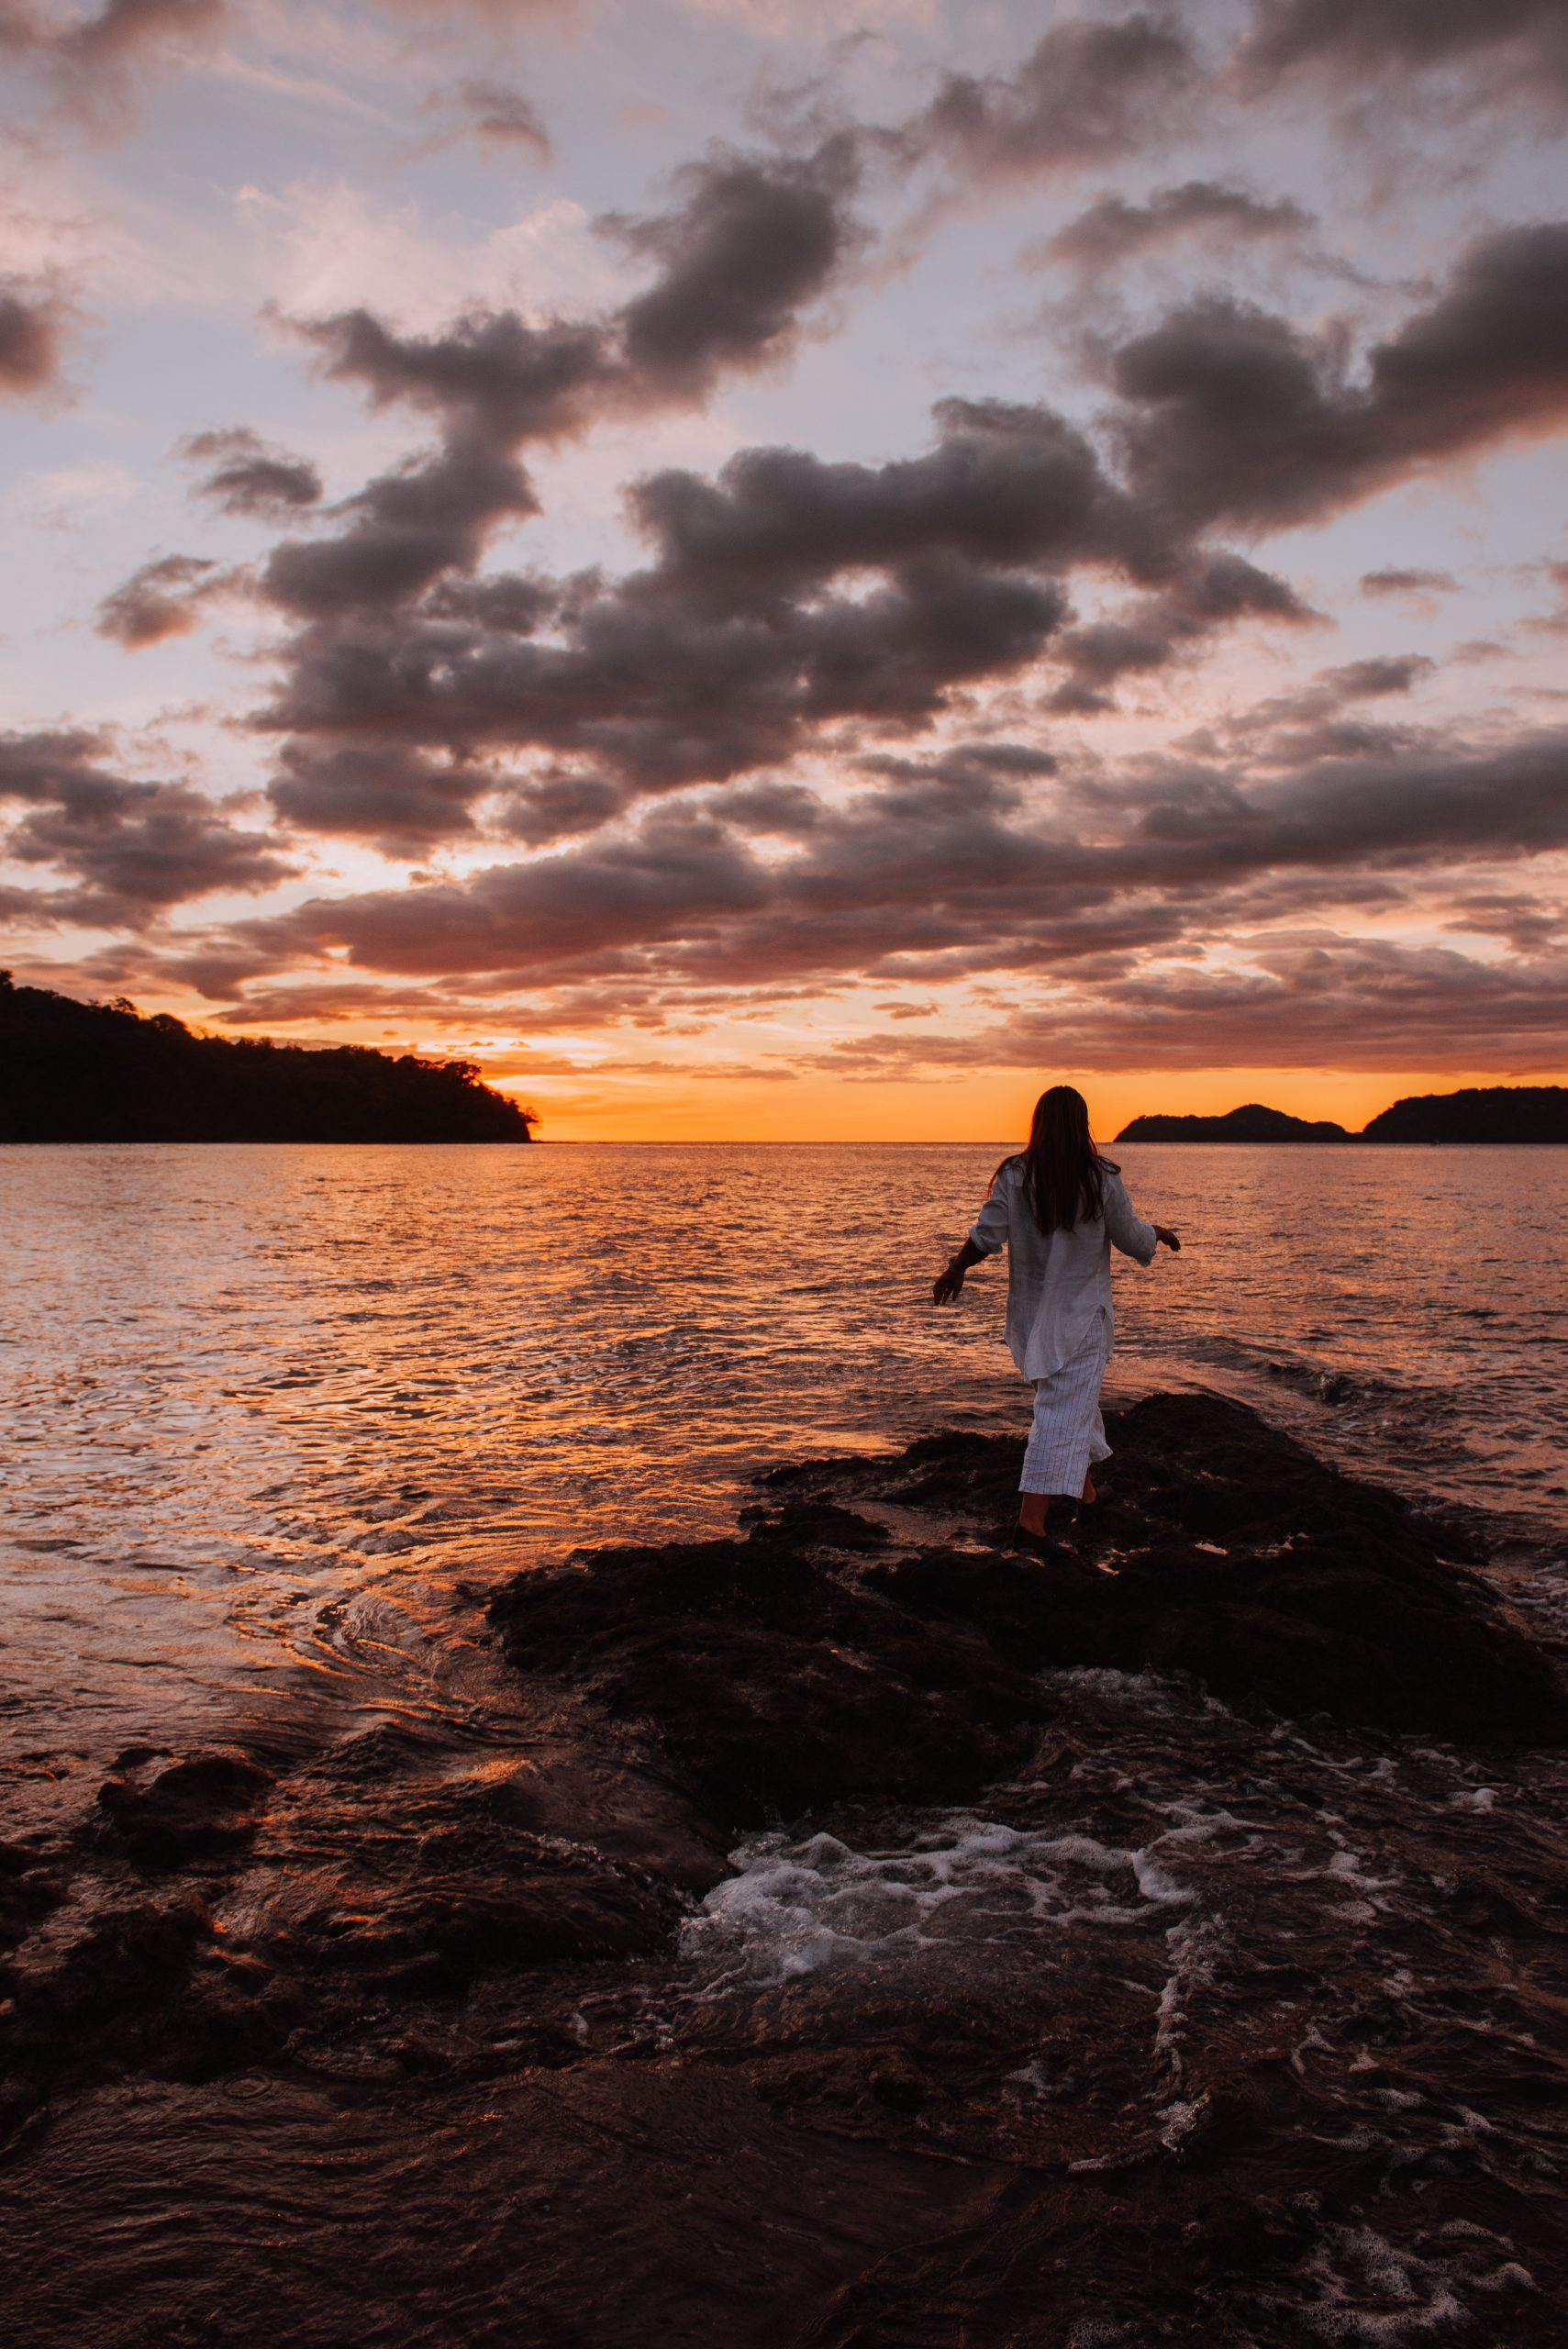 girl on rocks at sunset in costa rica by the ocean